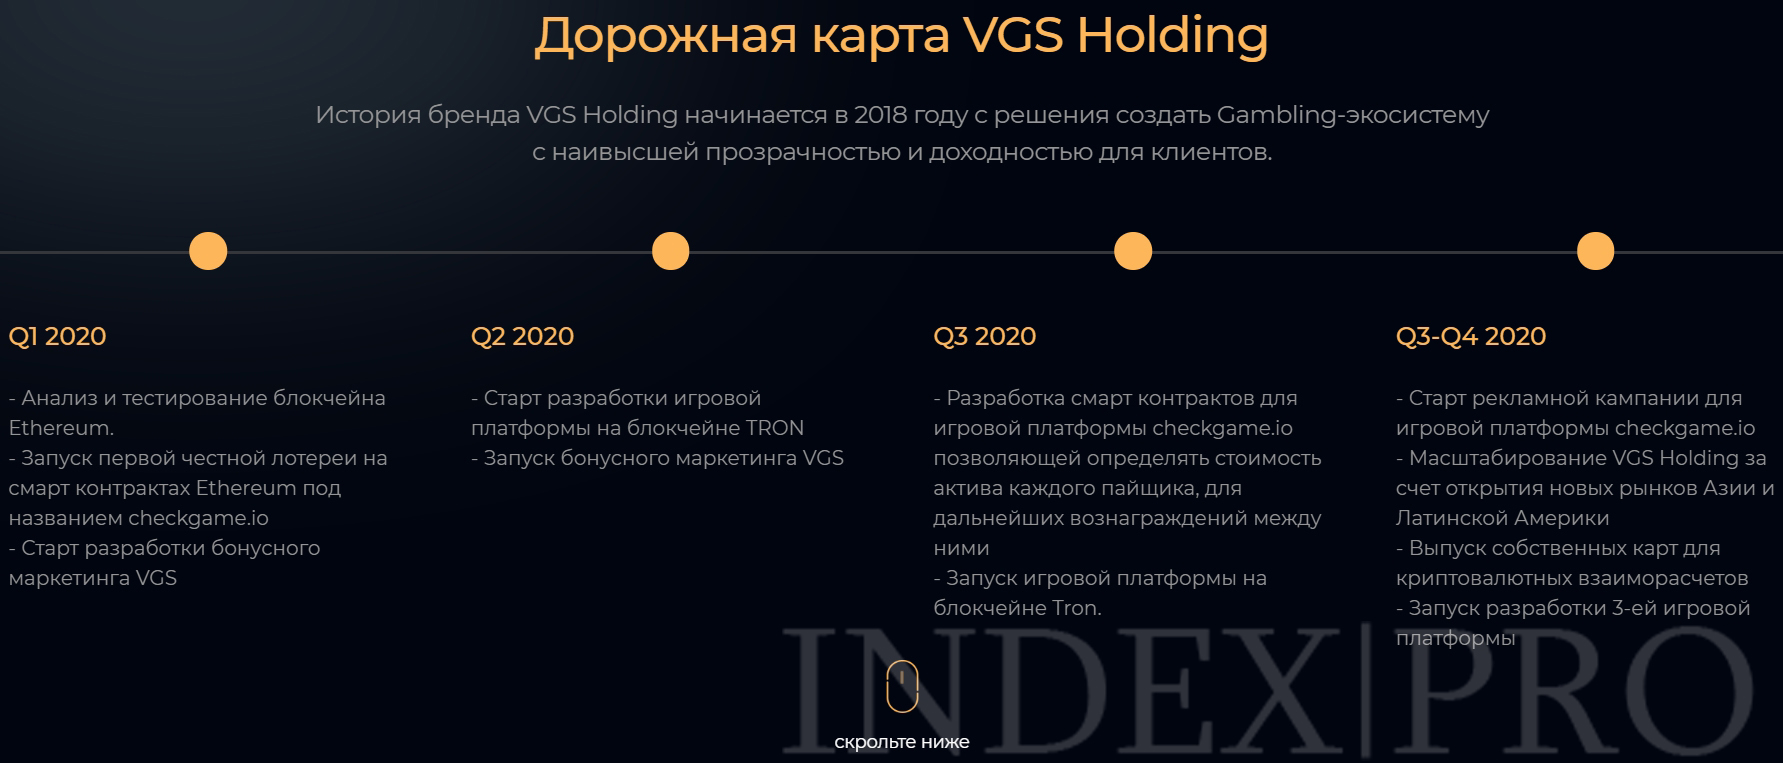 VGS Holding